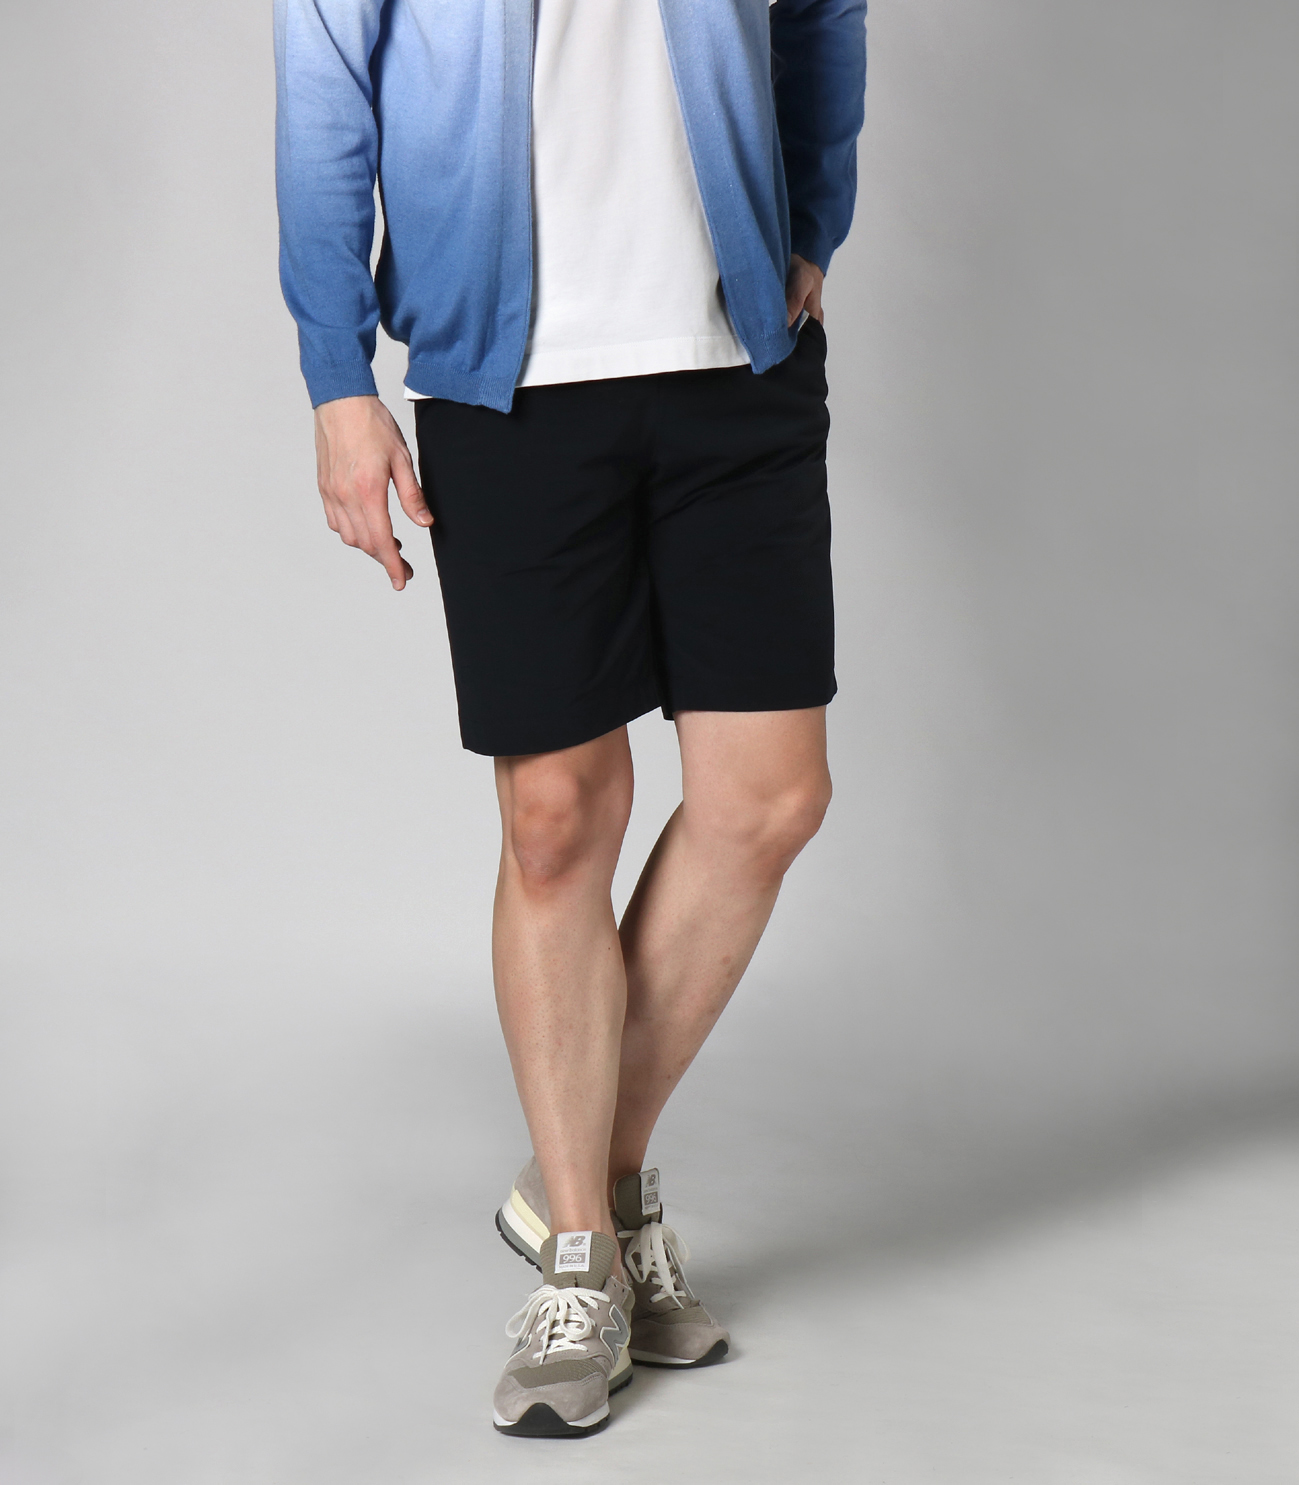 Men's travel line sharlingshorts 詳細画像 navy 6